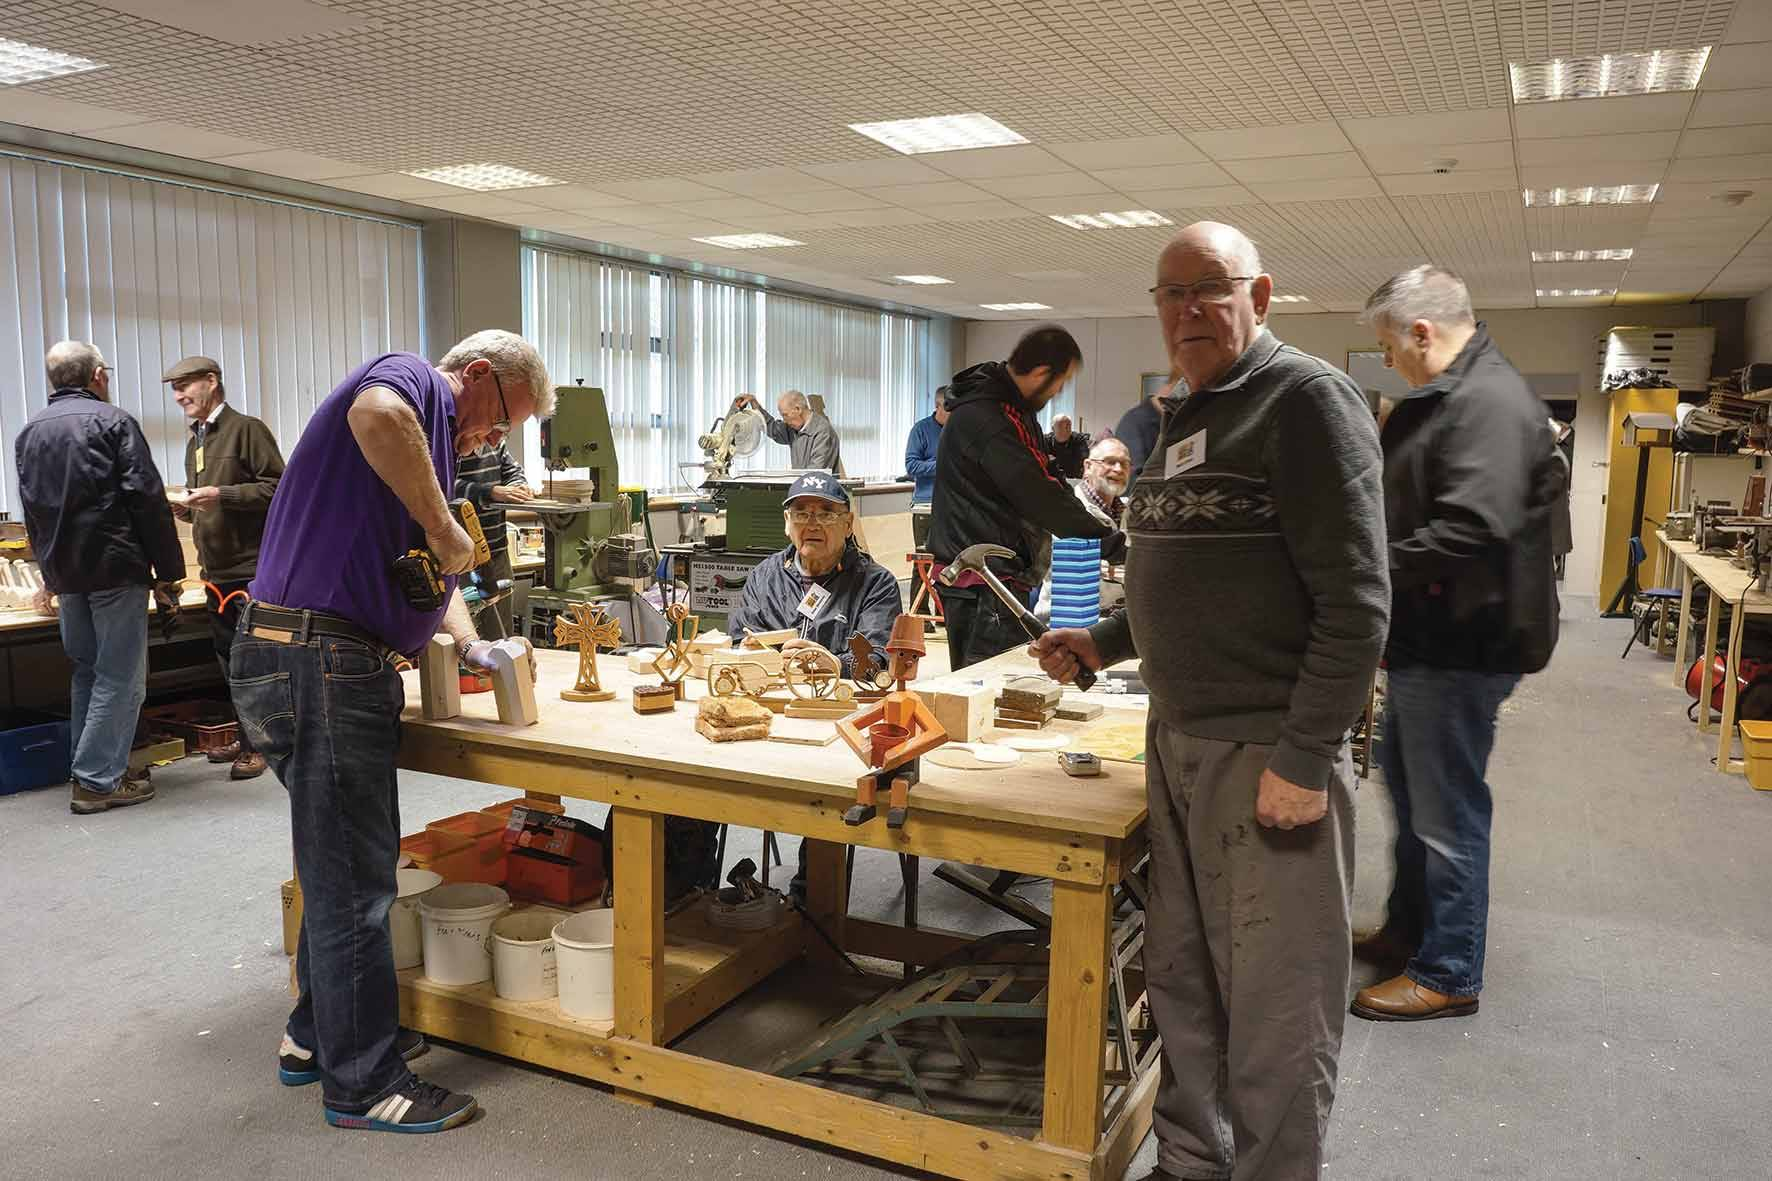 Members of the Carse Men's Shed during a woodworking workshop.